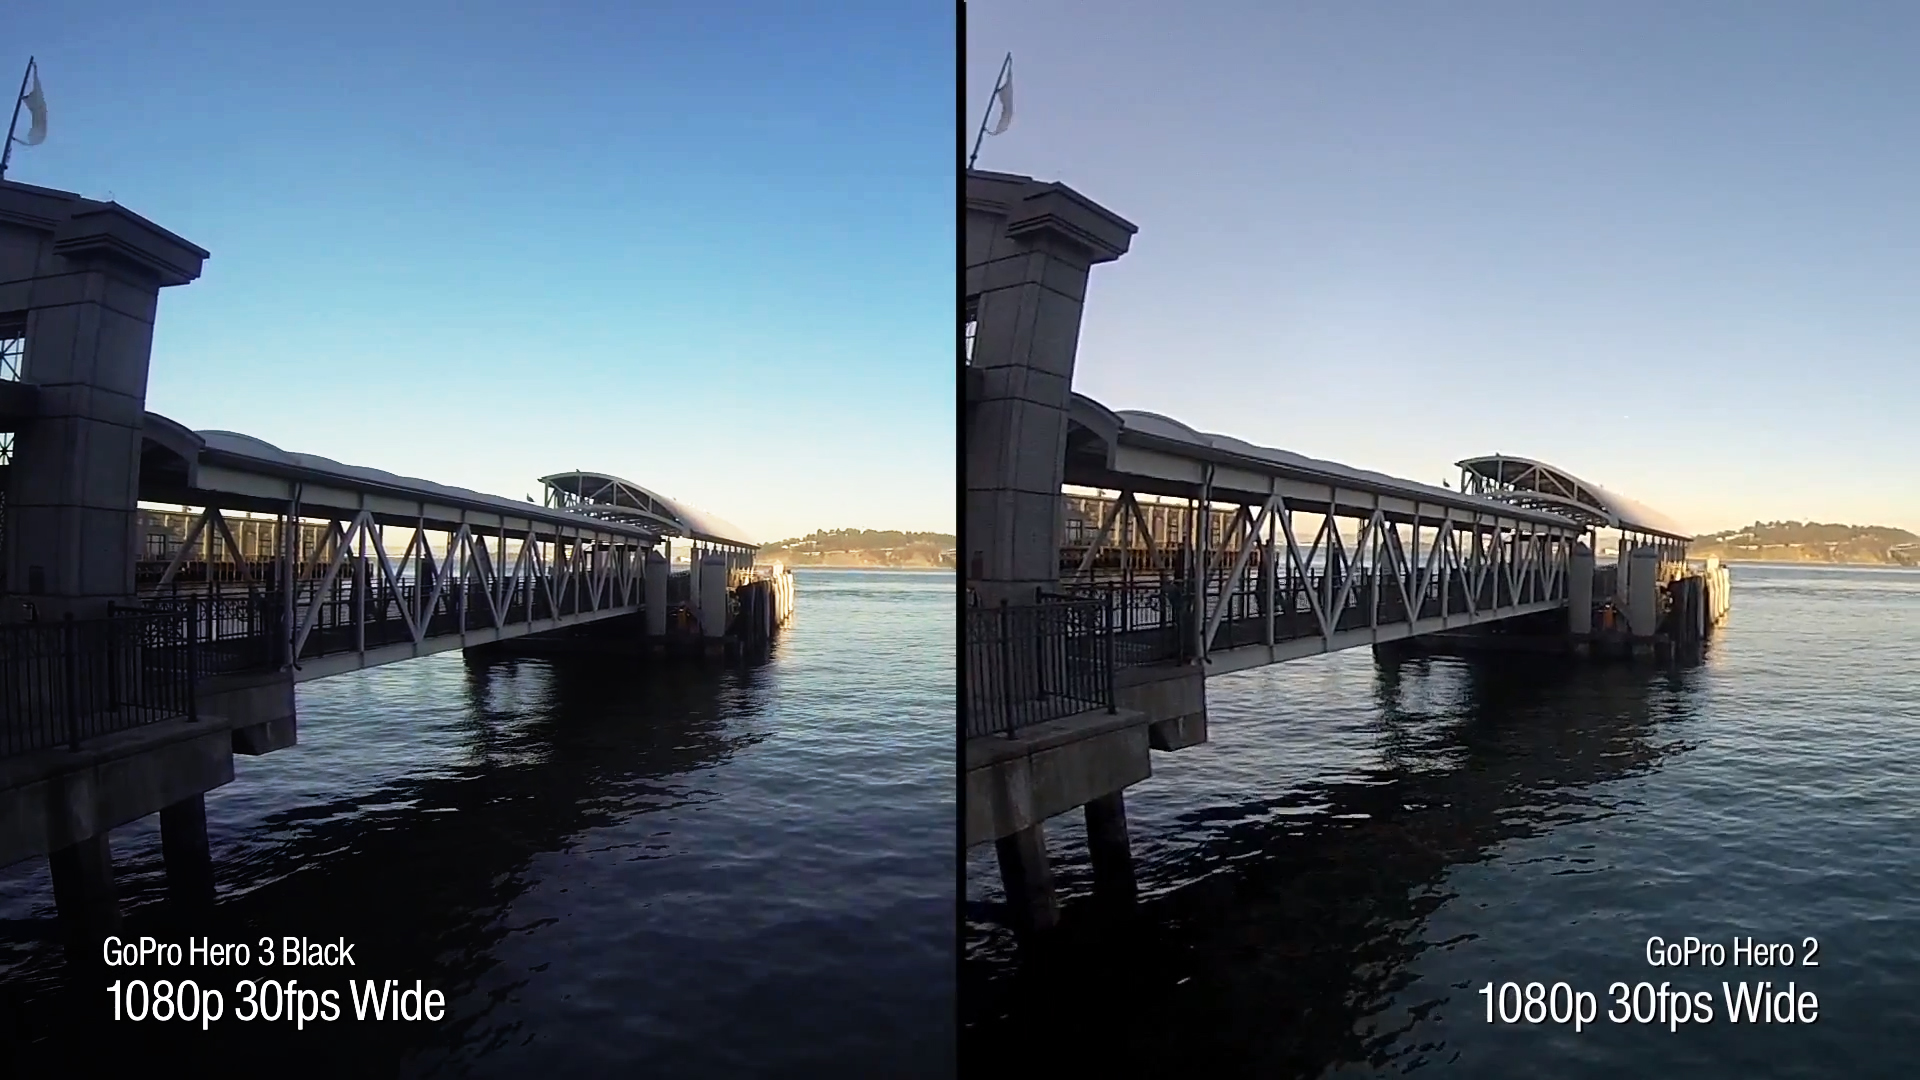 Tested GoPro Hero 3 Black Edition vs. GoPro Hero 2 Video Quality - Tested & Tested: GoPro Hero 3 Black Edition vs. GoPro Hero 2 Video Quality ... azcodes.com